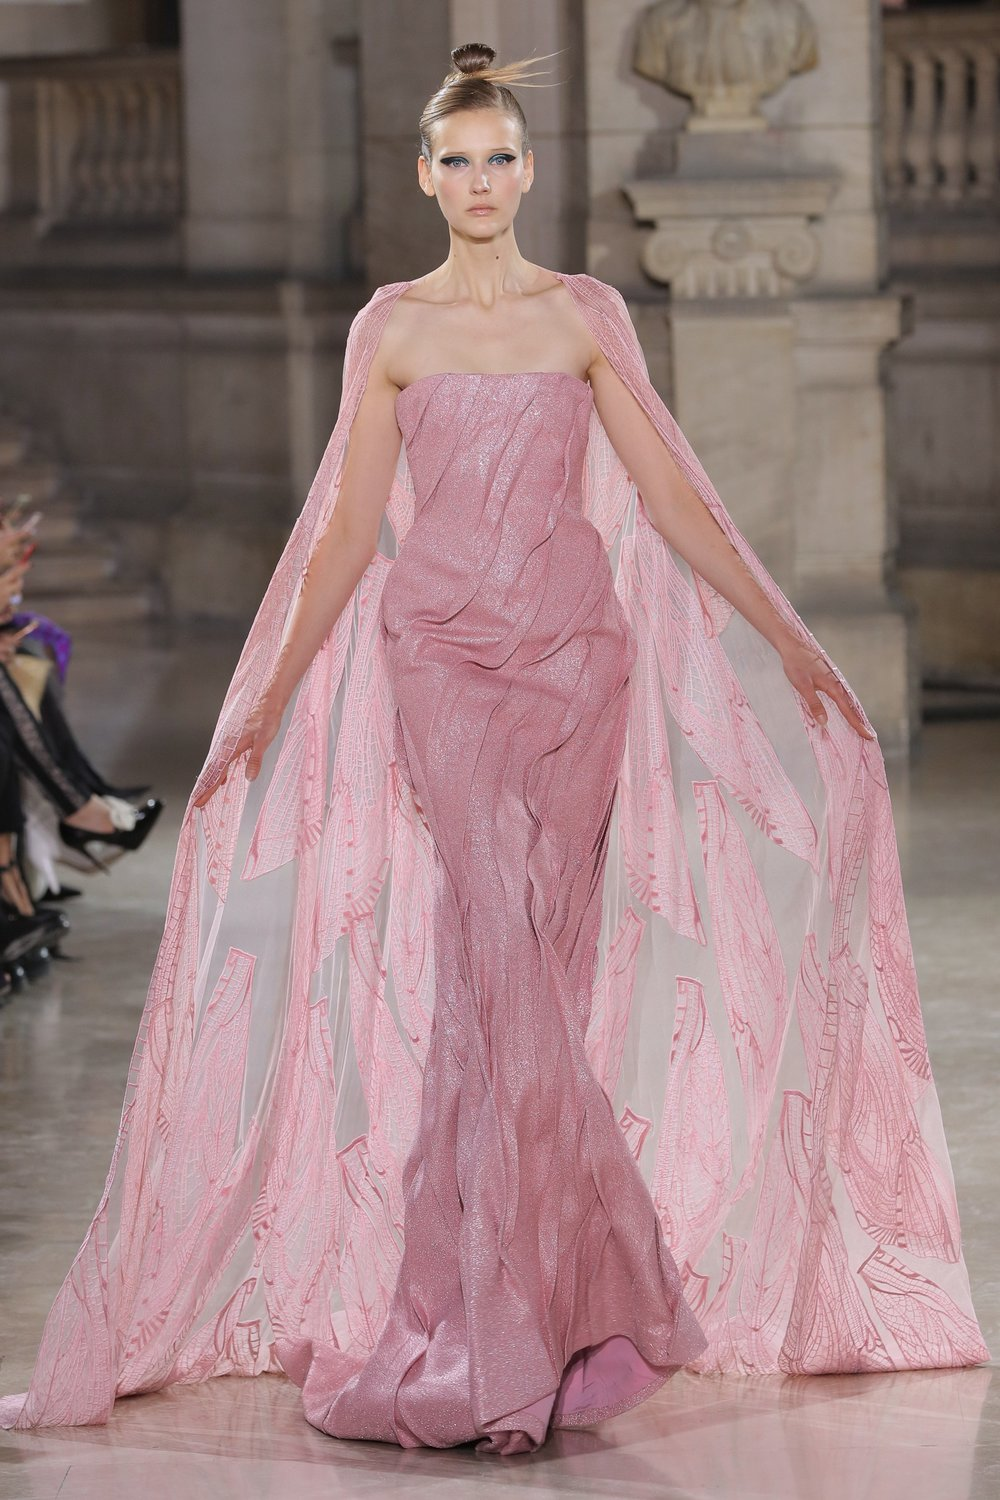 TONY_WARD_COUTURE_SS19_11.jpg